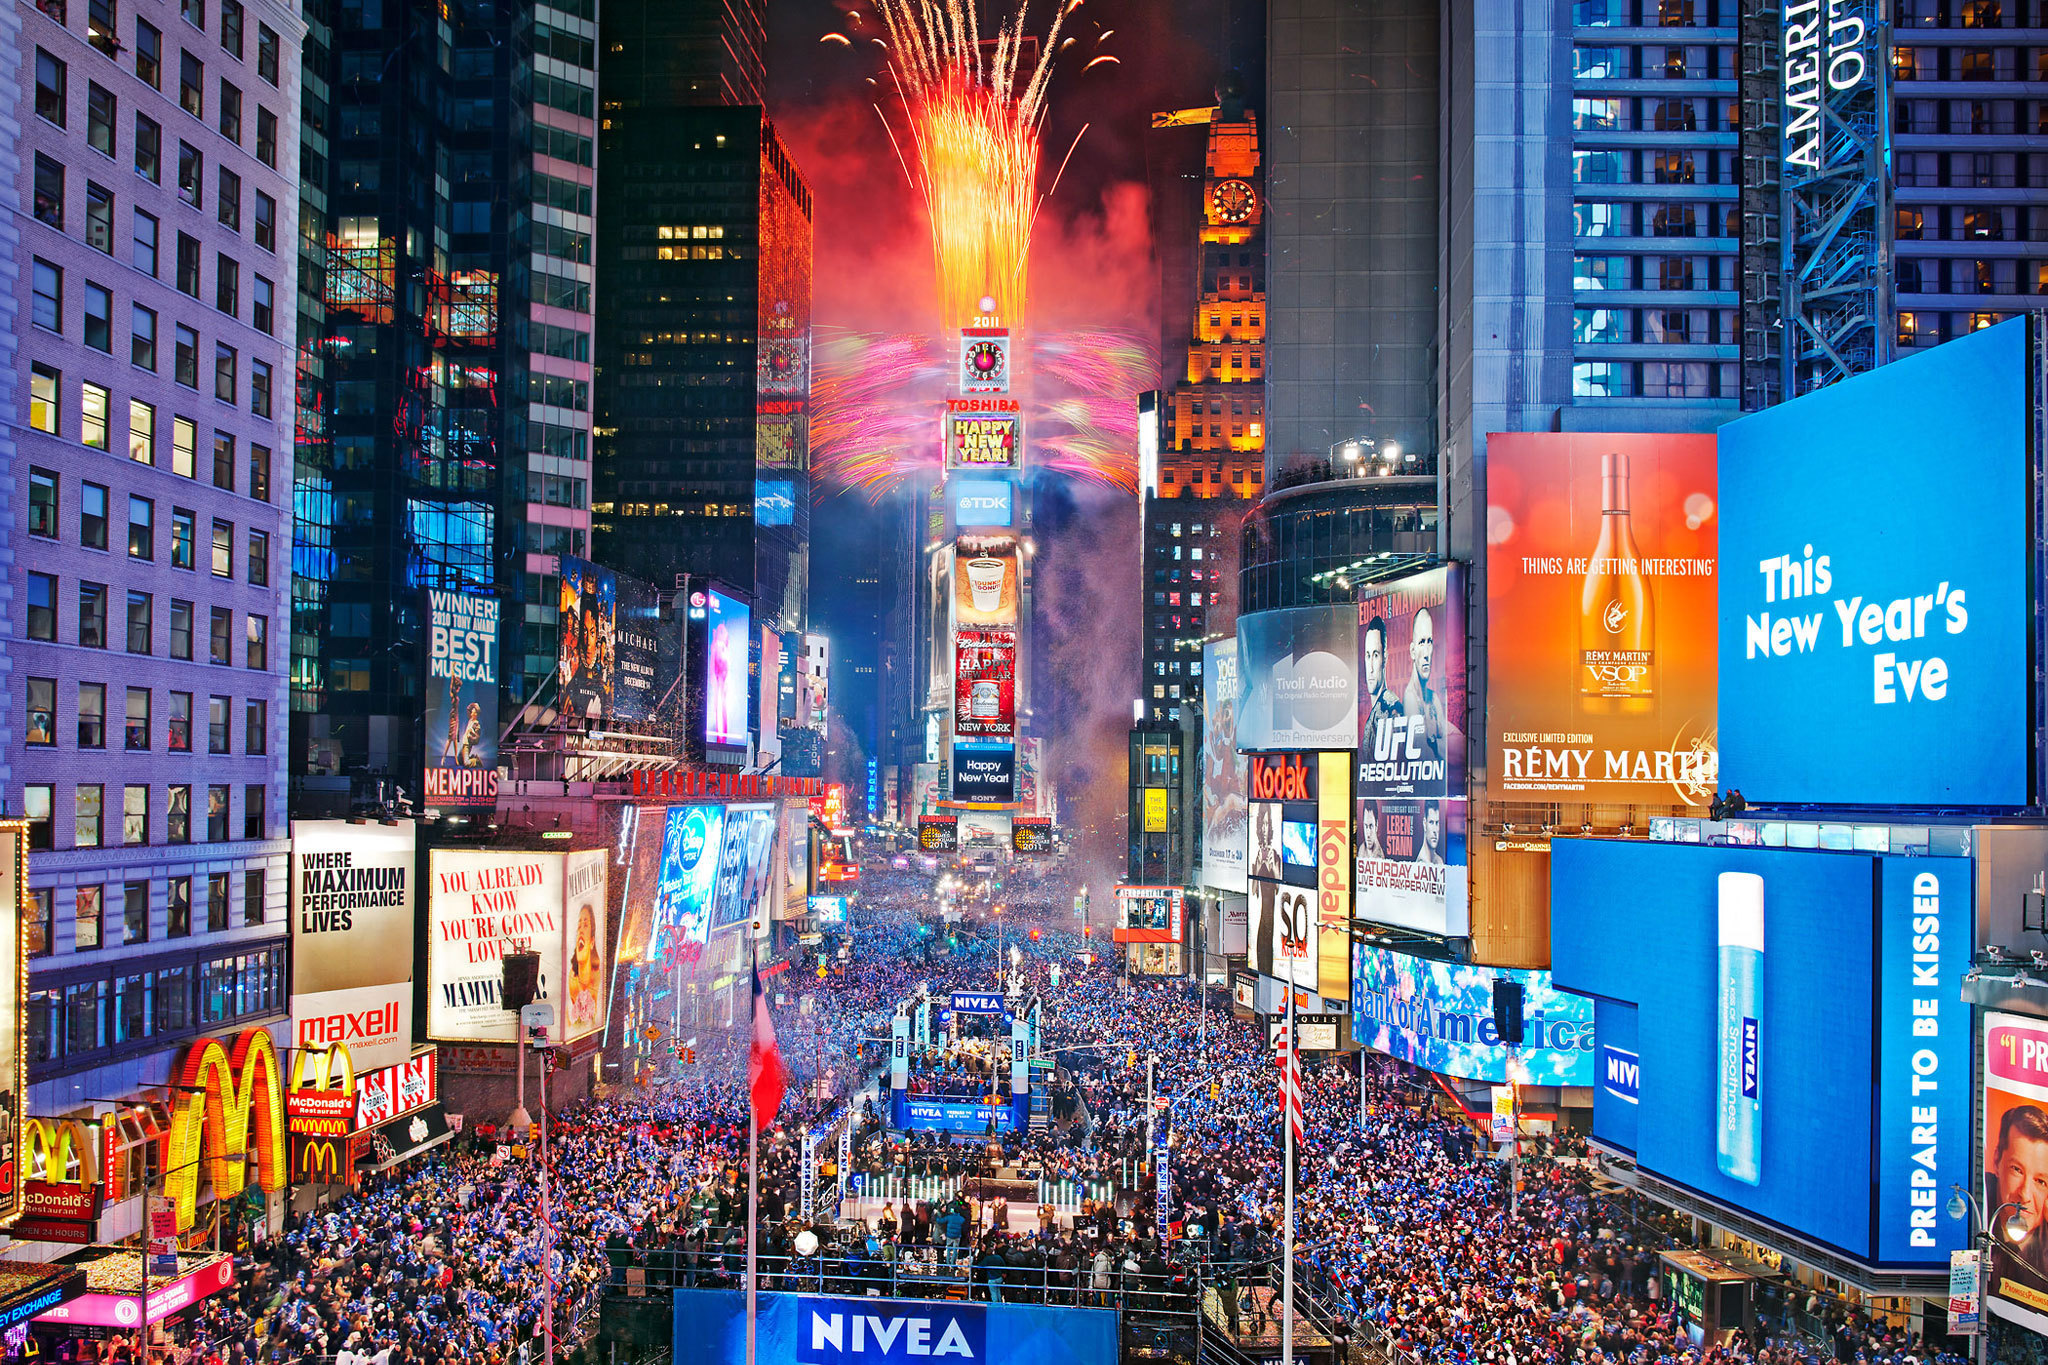 New Year's Eve 2018 NYC Guide Including Things To Do